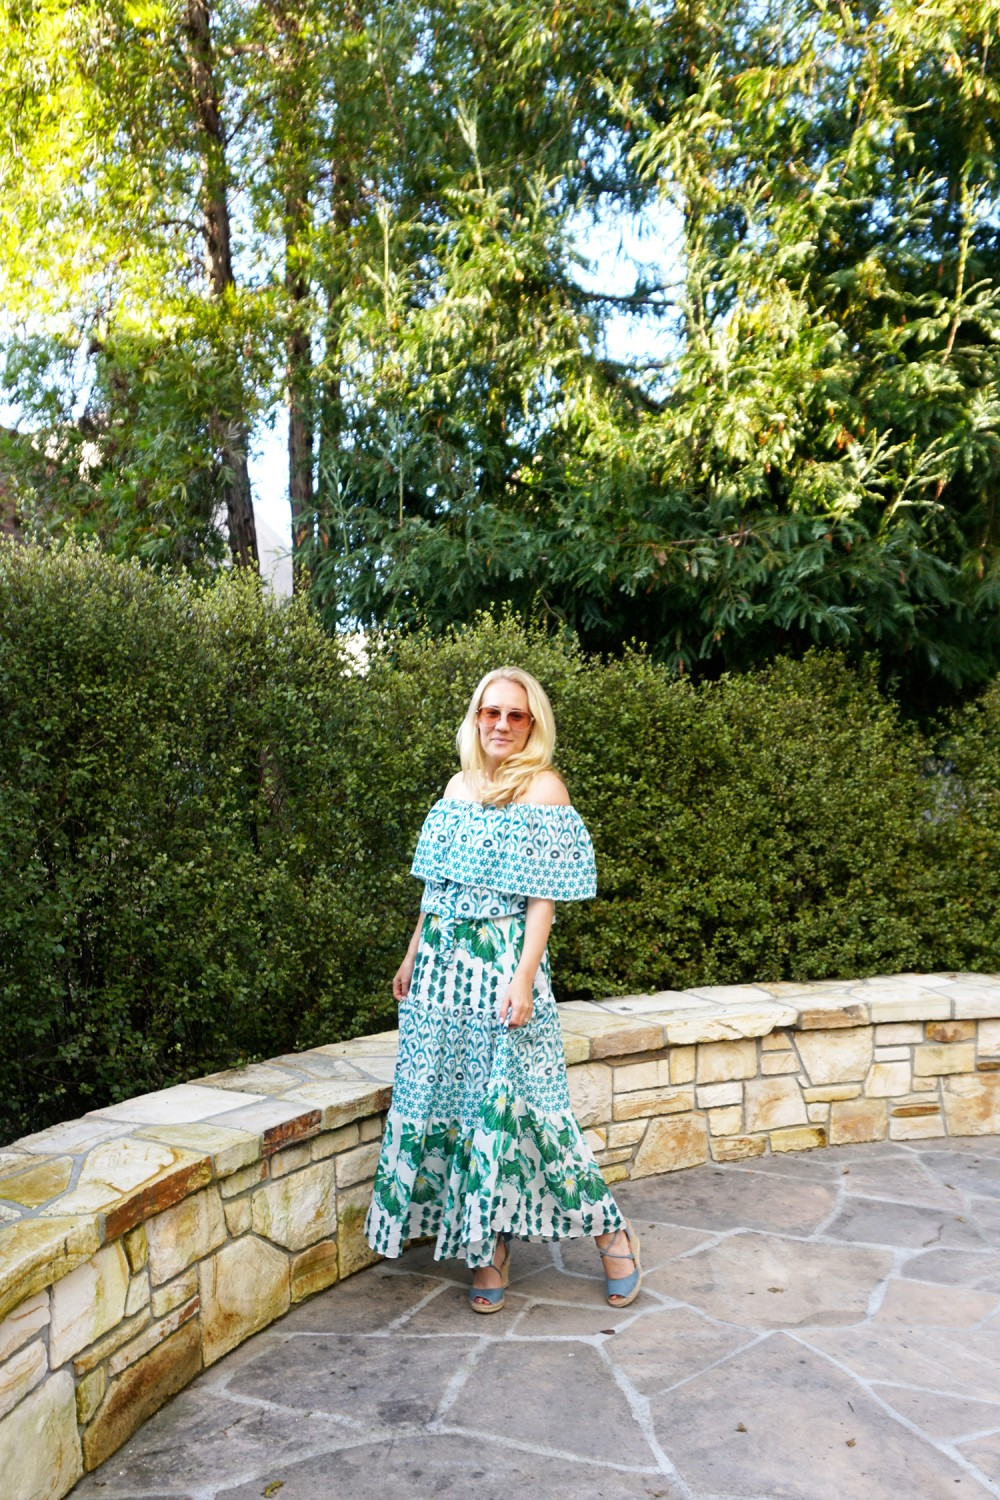 Off The Shoulder Maxi Dress-Temperley London-Outfit Inspiration-Wine Tasting-Visit Carmel by the Sea-Have Need Want 5